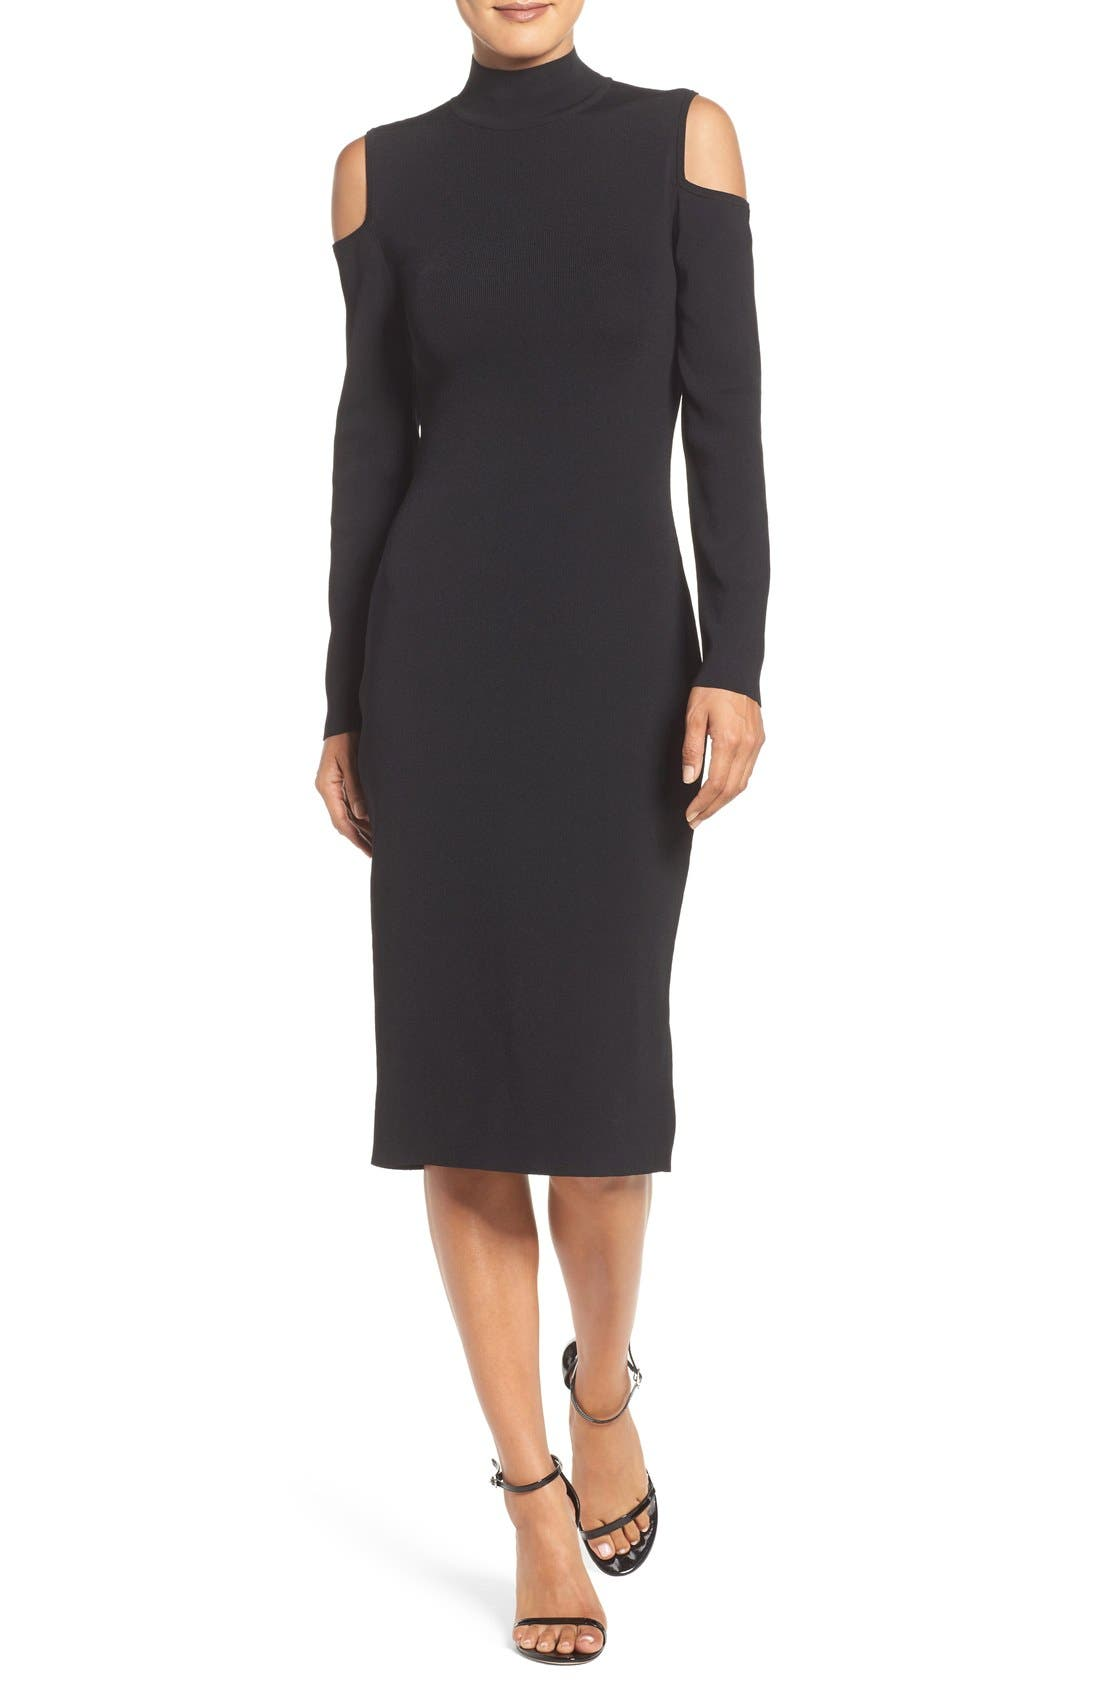 Main Image - Laundry by Shelli Segal Cold Shoulder Dress